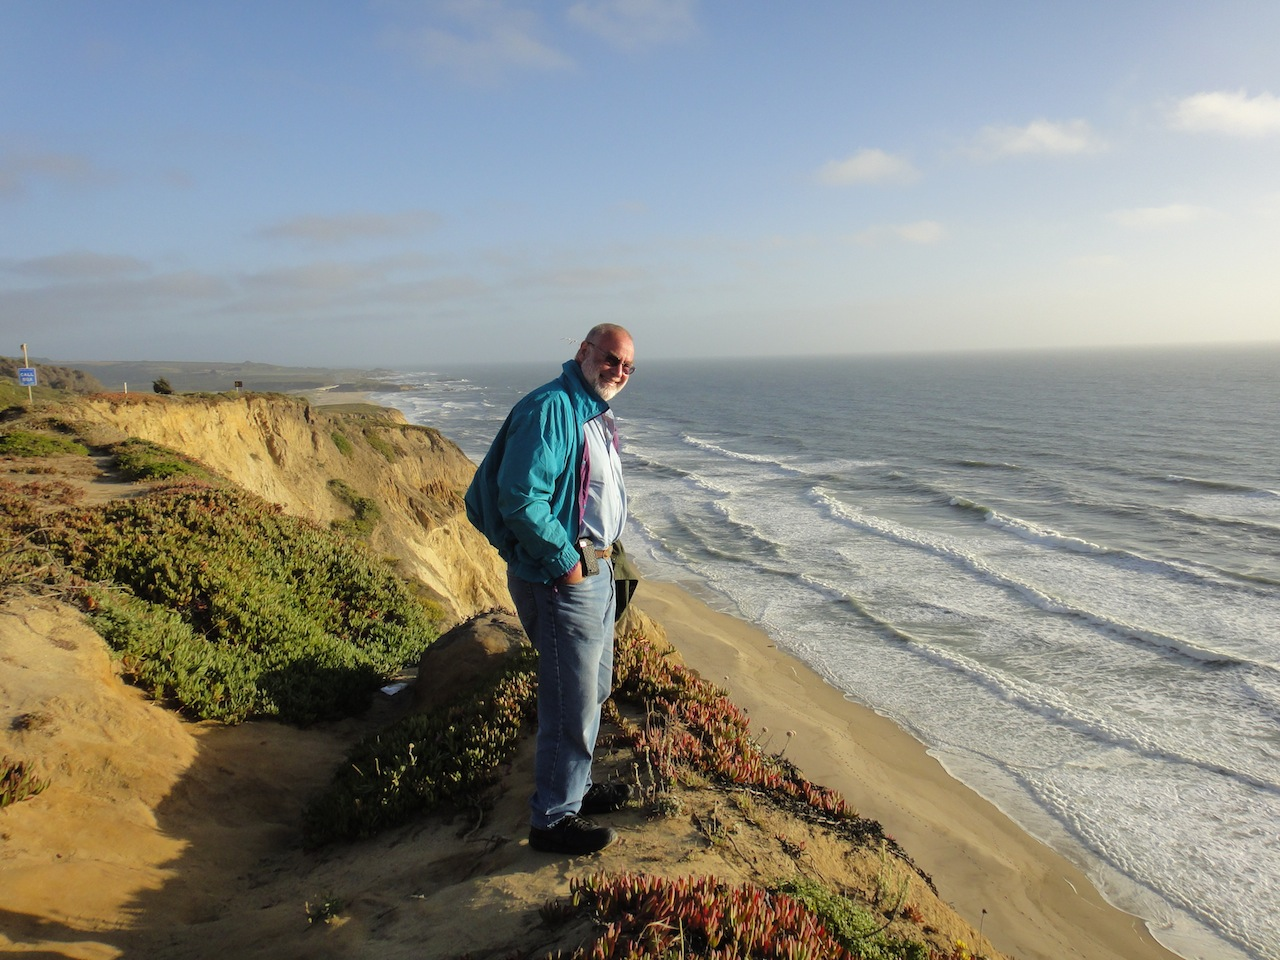 Visiting the coast near Santa Cruz